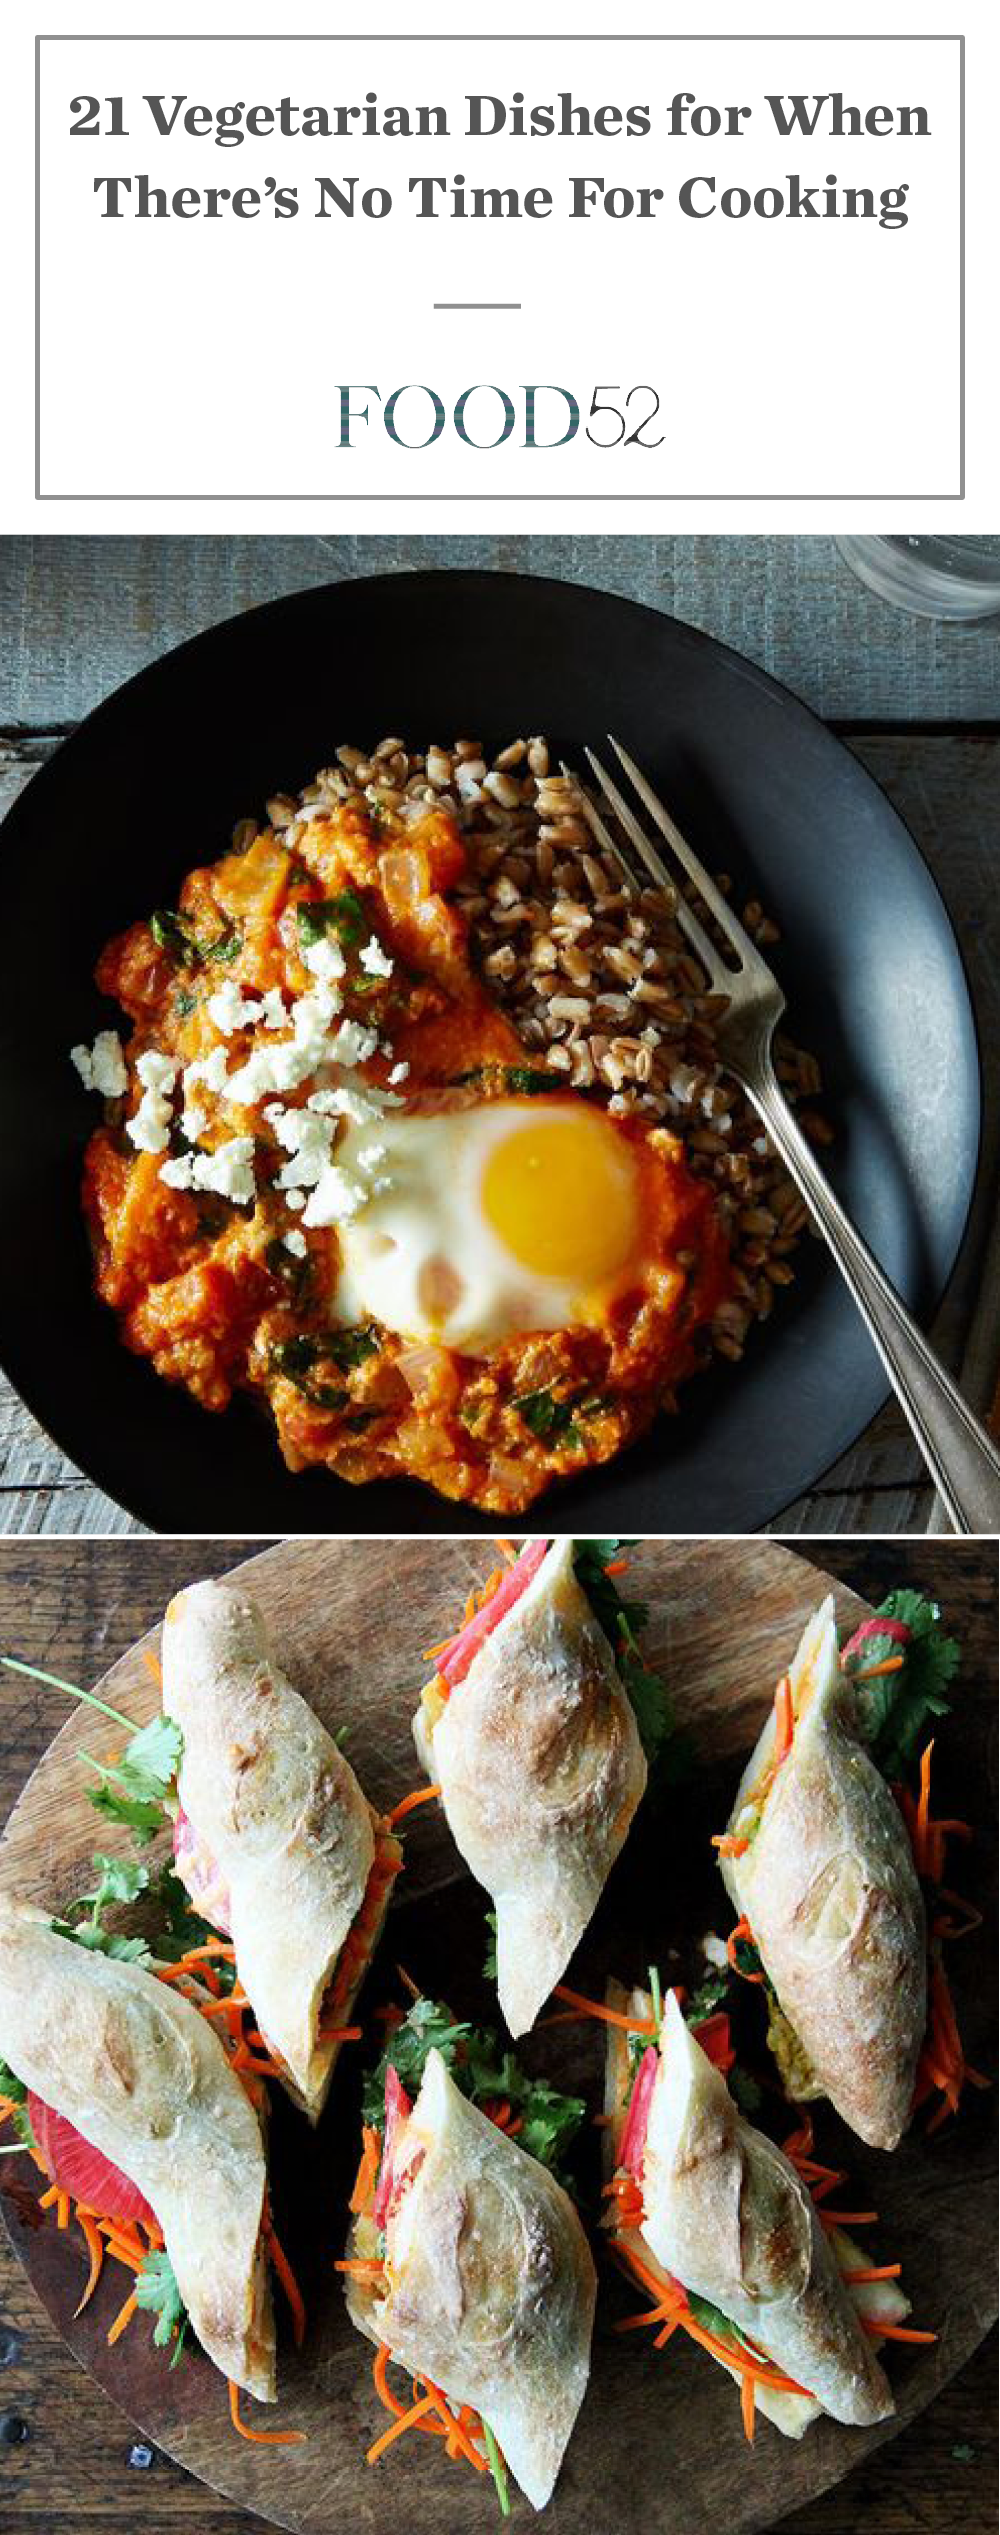 21 Vegetarian Dishes for When Cooking Doesn't Fit In Your Agenda is part of cooking Vegetarian Dishes - Because no matter how busy you are, you still have to eat